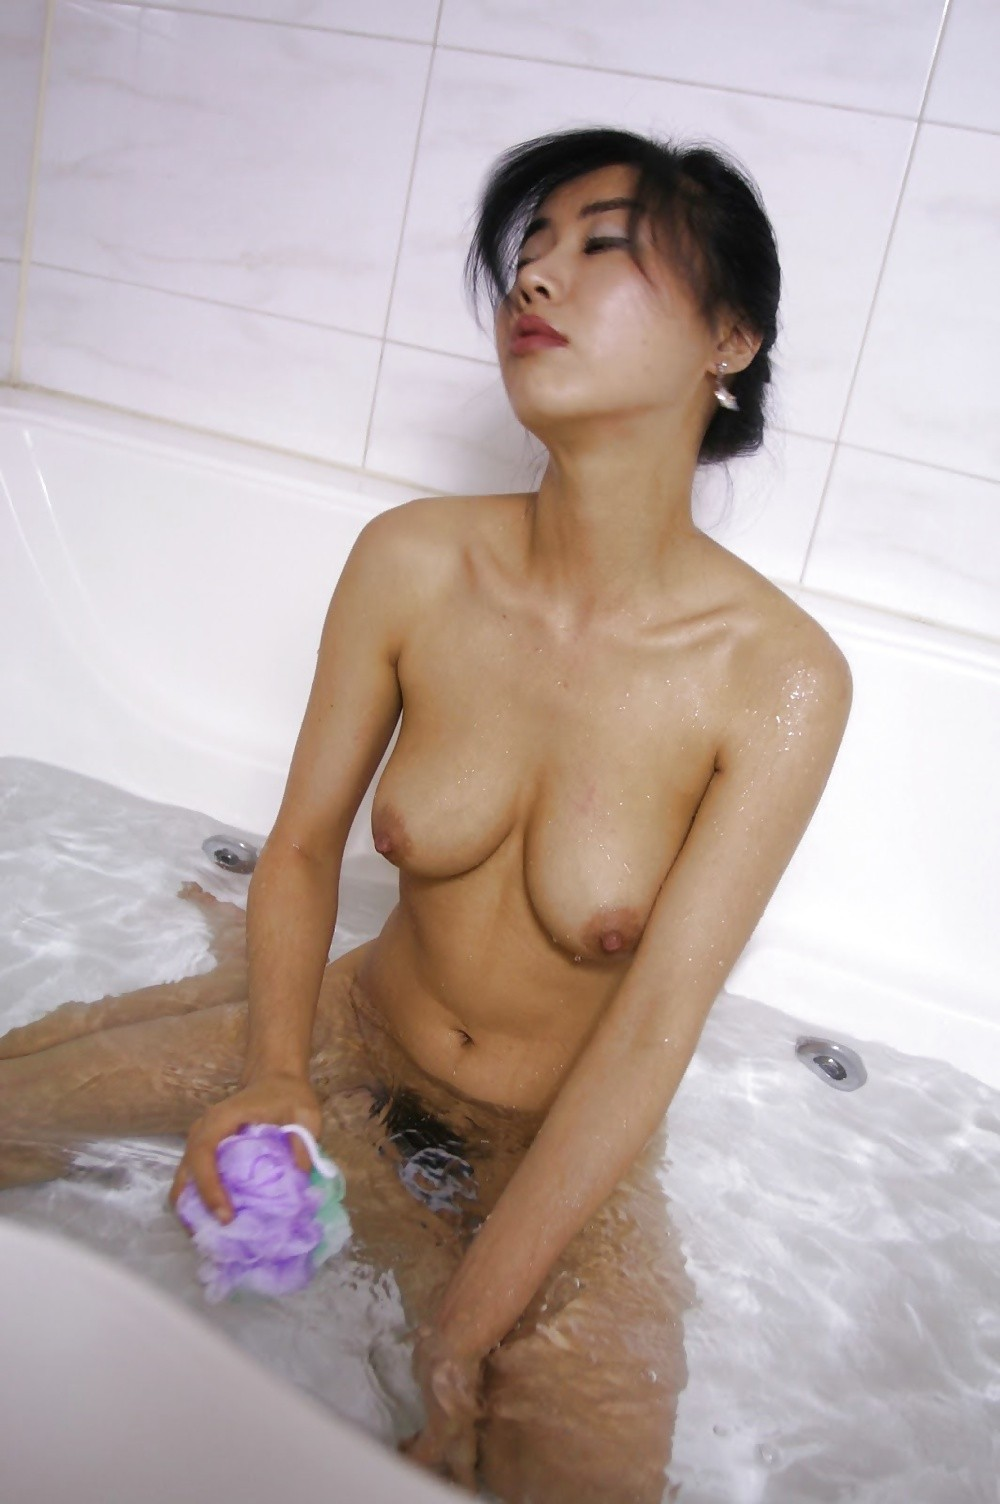 Nude asian girls bathtub seems